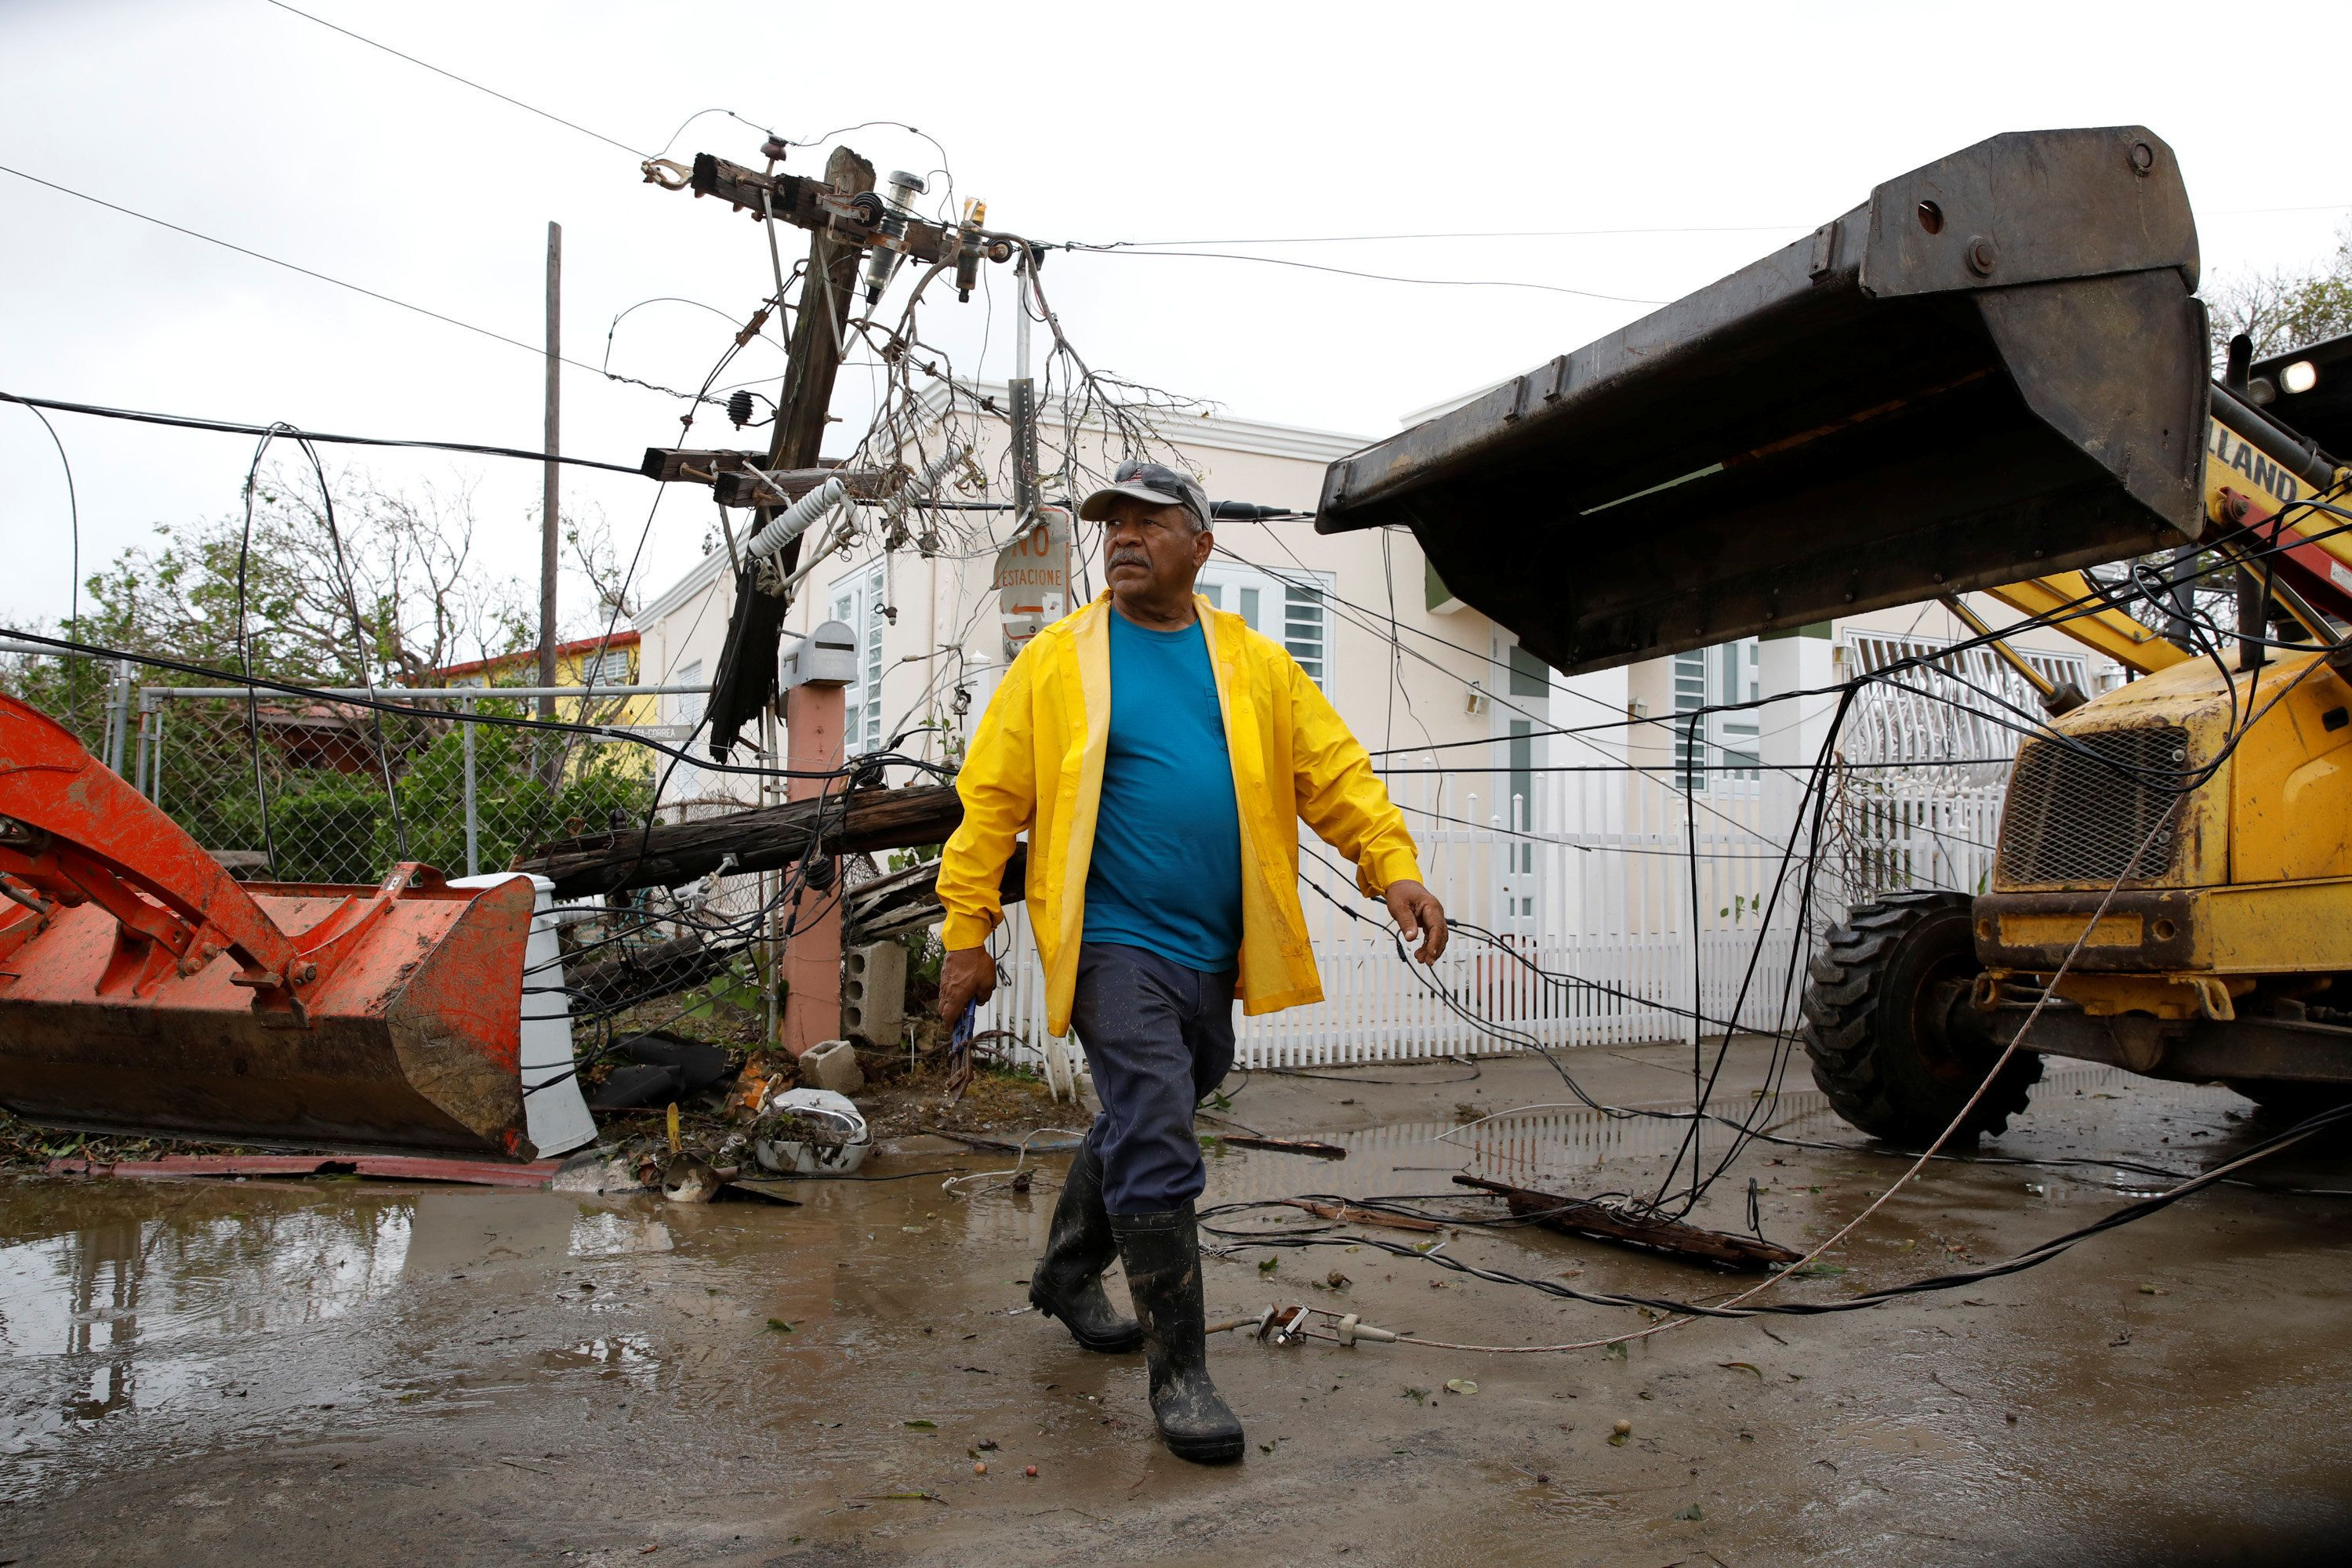 Puerto Ricous Power Outage Could Be A Death Sentence For Many